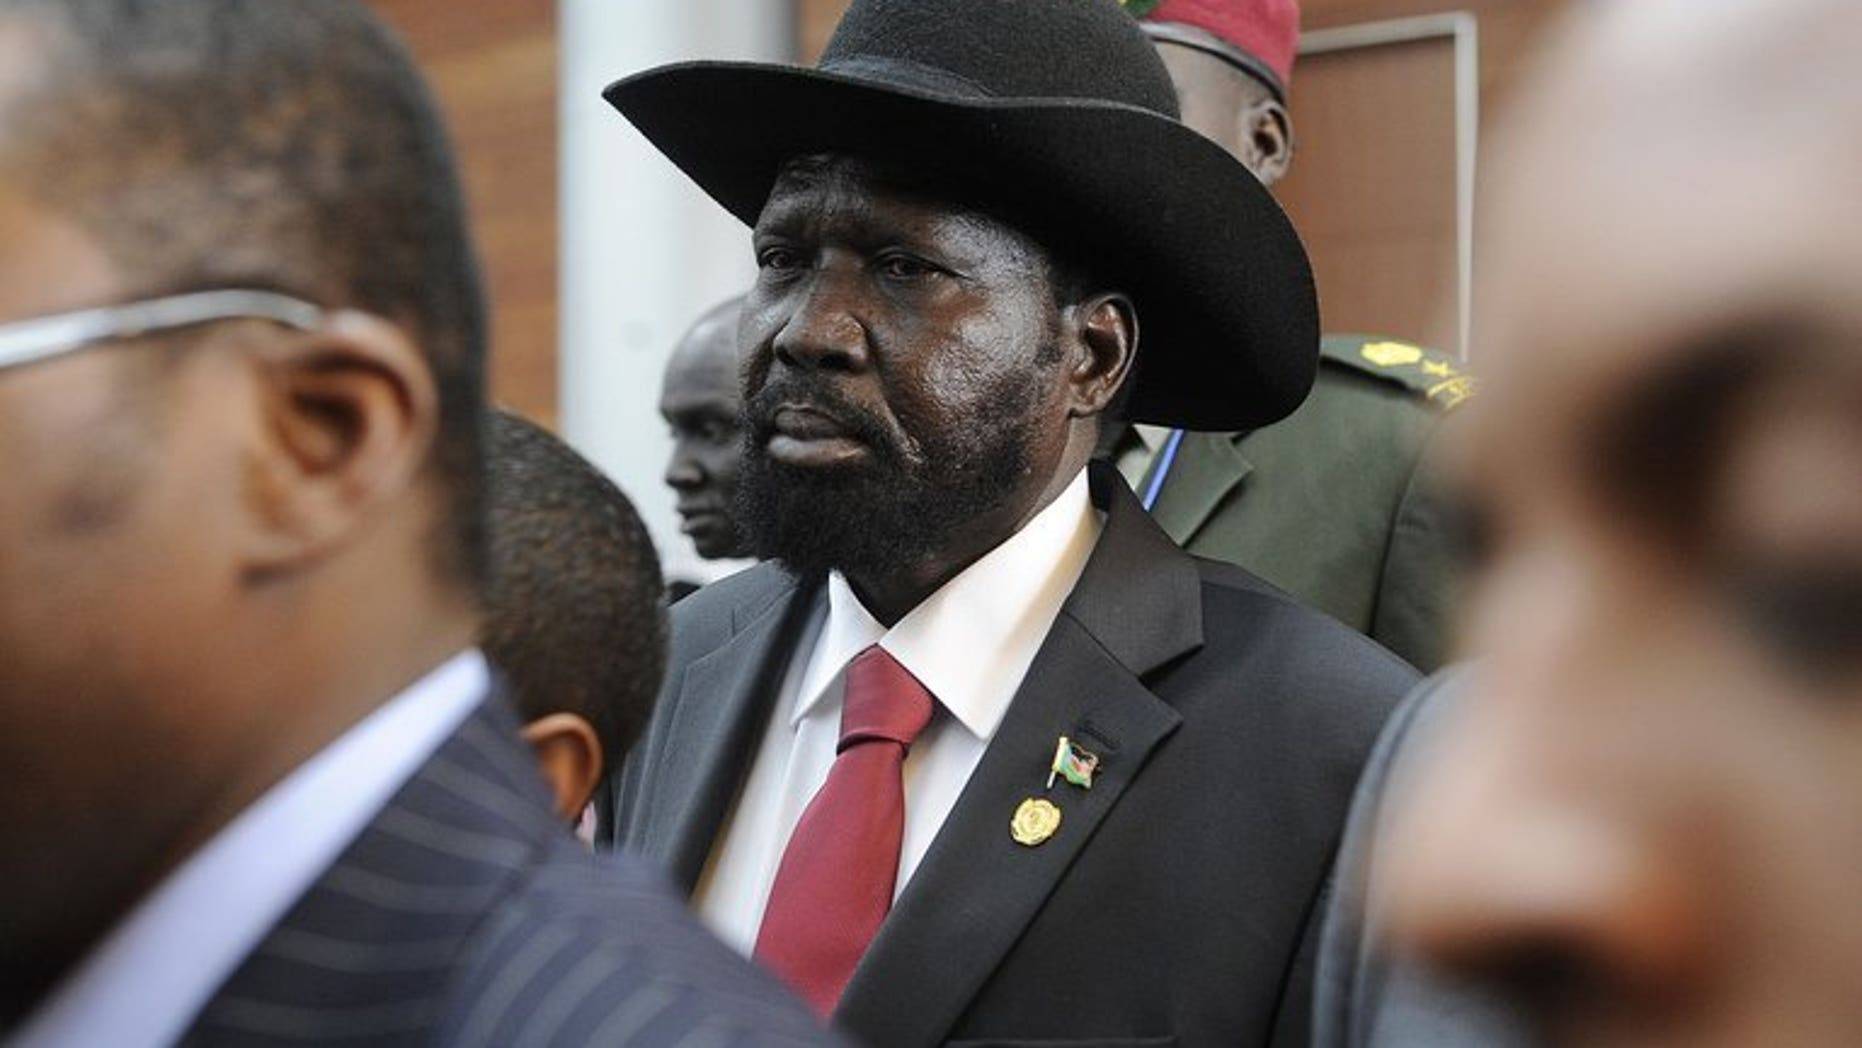 South Sudan President Salva Kiir, seen at a summit in Addis Ababa, Ethiopia, on May 26, 2013. South Sudan's President Salva Kiir held consultations with a view to setting up a new government, two days after firing his entire cabinet, a government official has said.